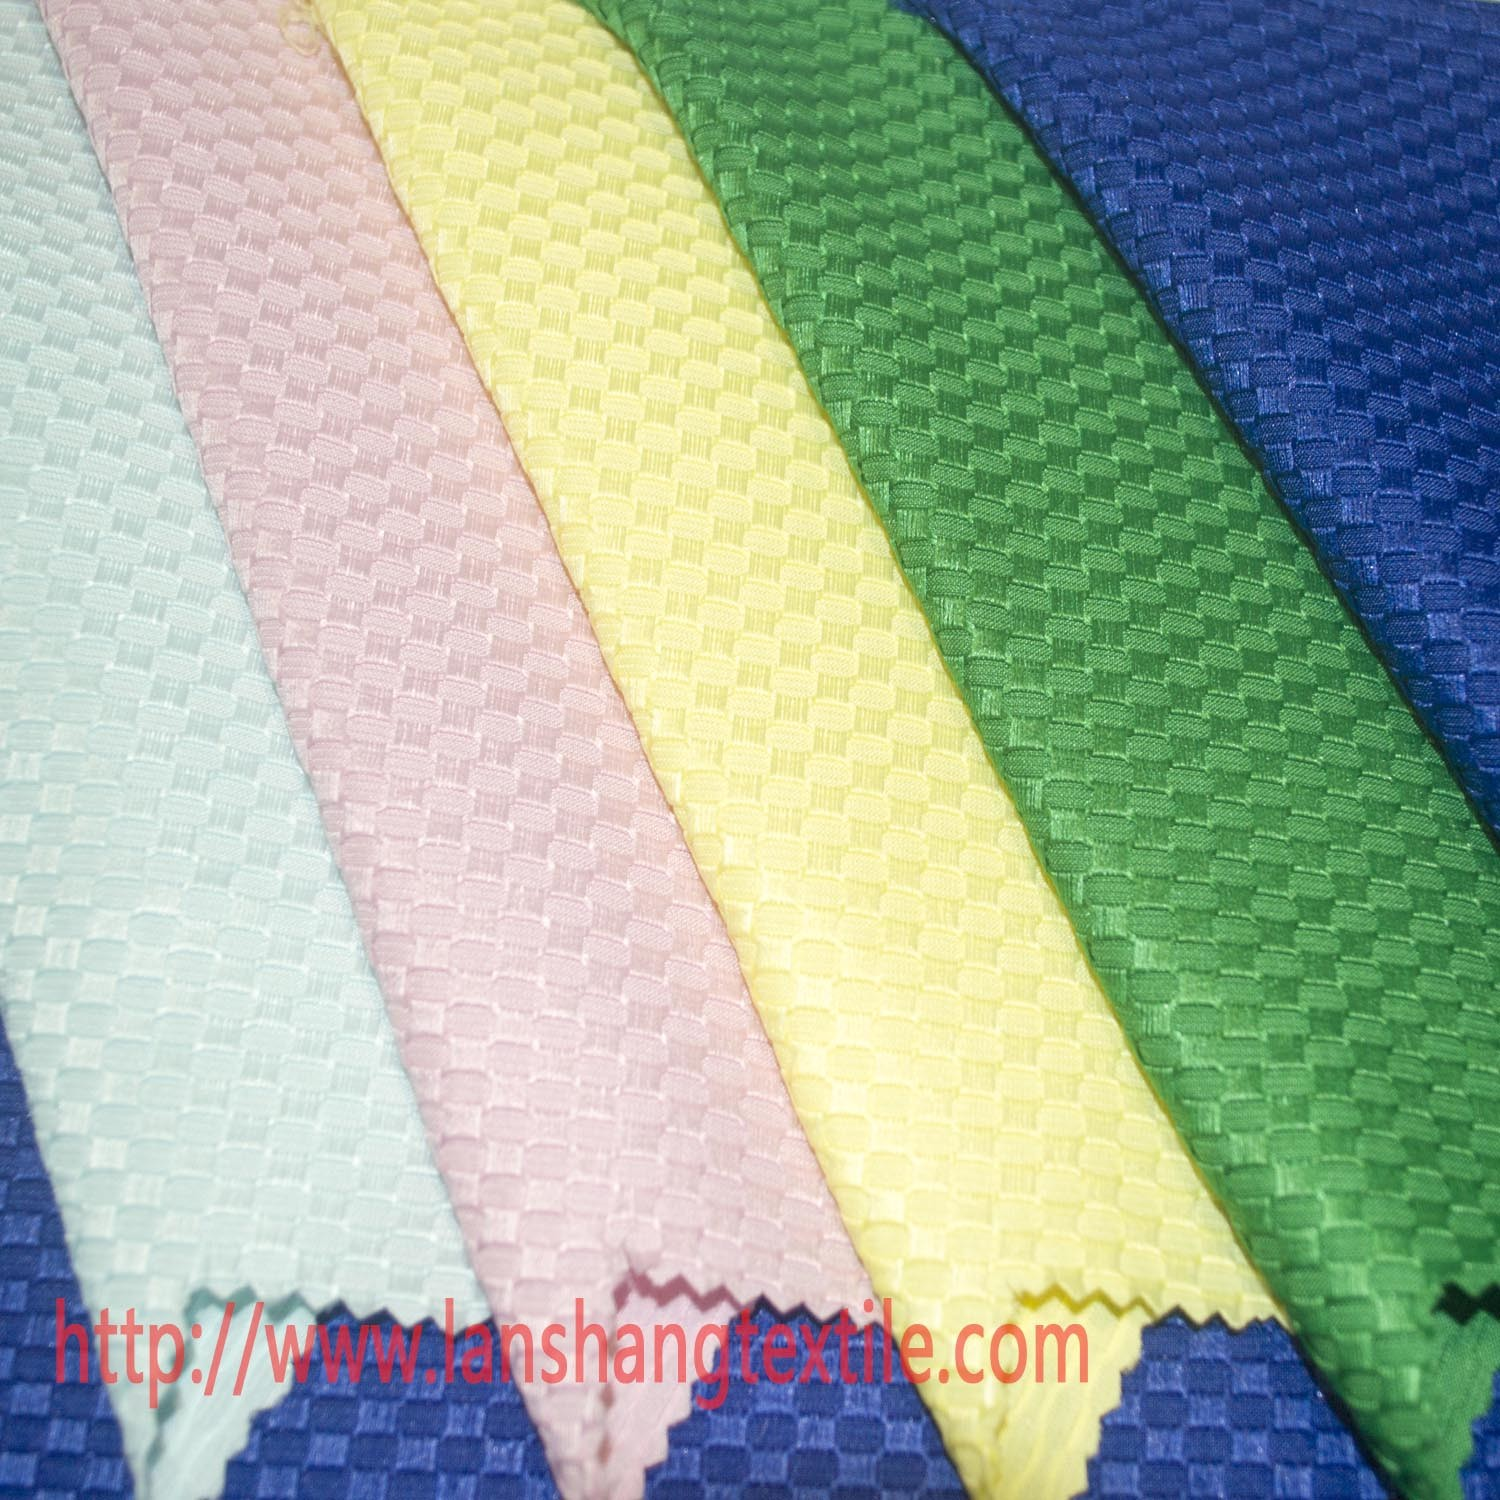 Polyester Fabric Chemical Fabric Jacquard Dyed Fabric for Garment Dress Printing